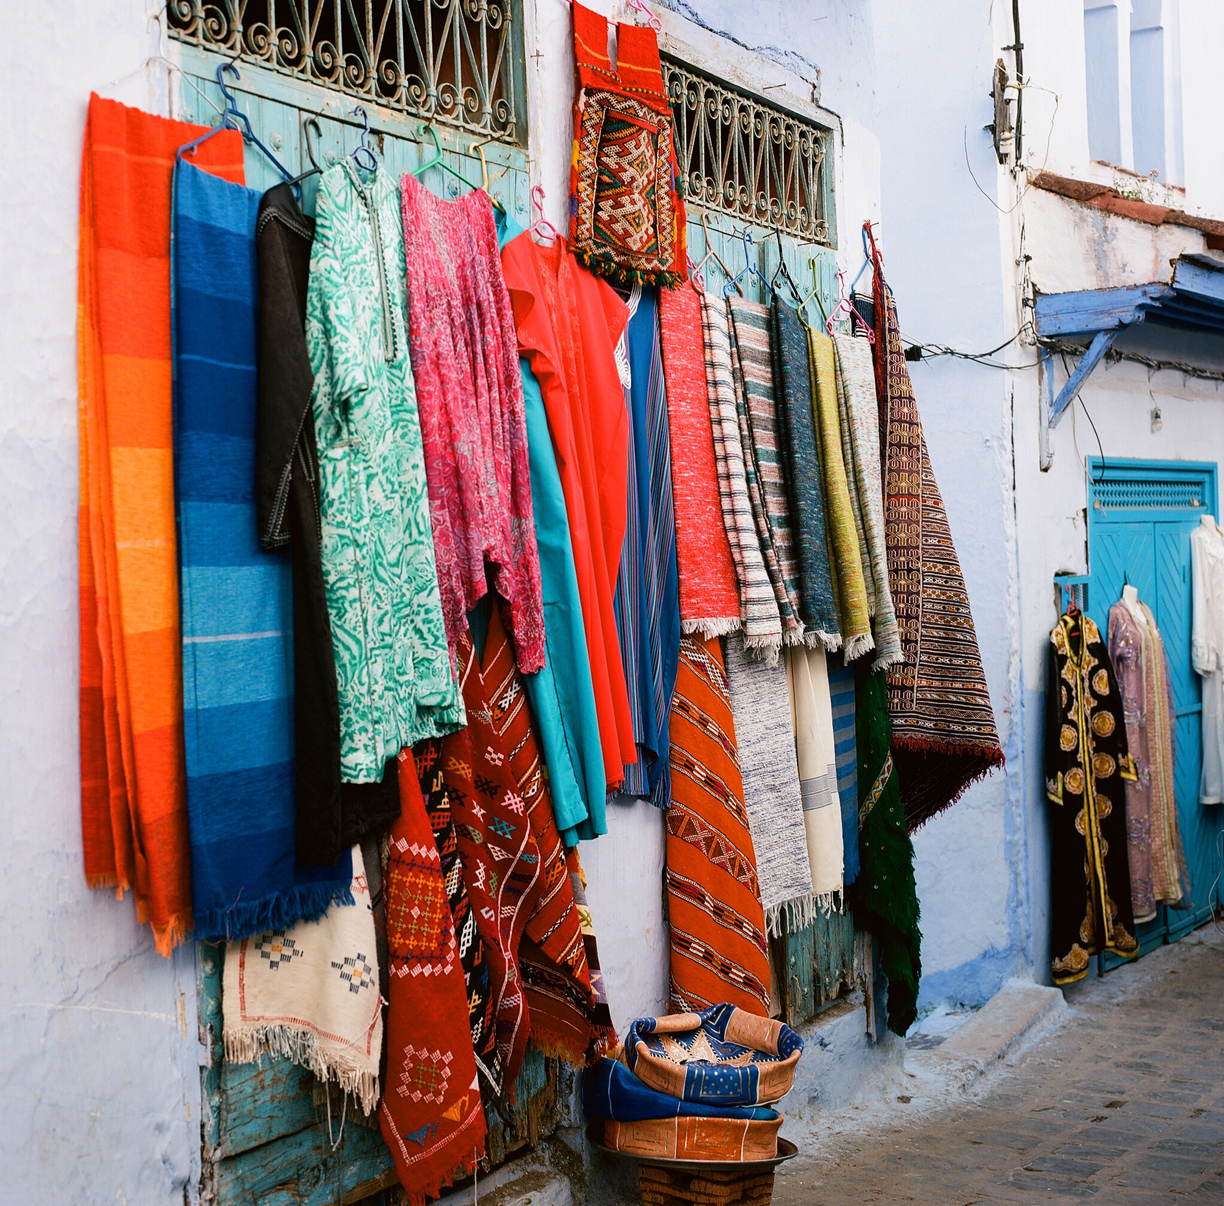 Rugs on Medina Wall_Chefchaouen_web.jpg